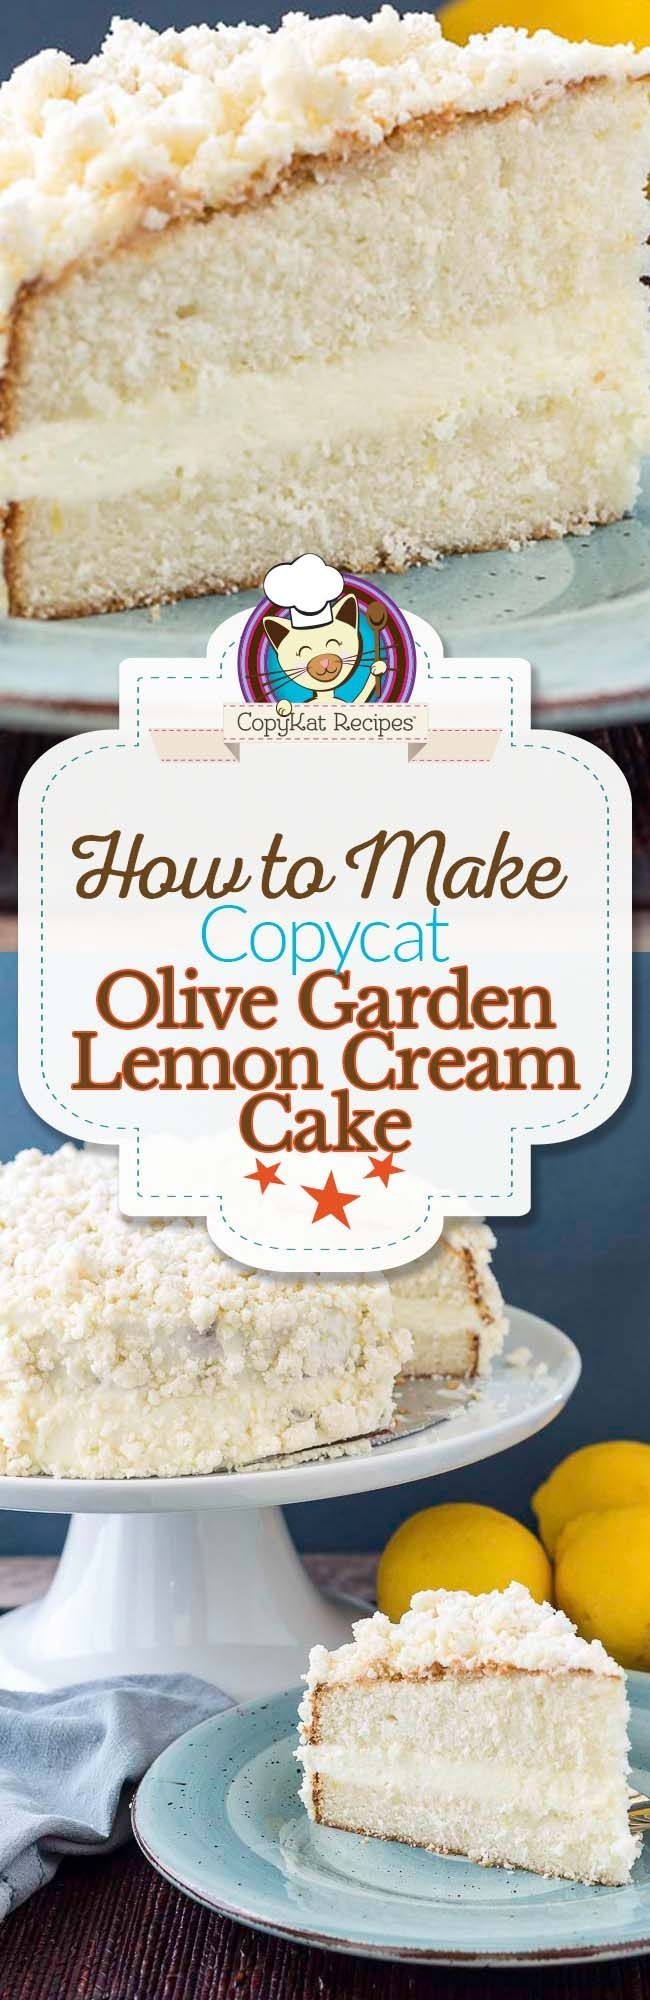 Make your own delicious Olive Garden Lemon Cream Cake with this copycat recipe.